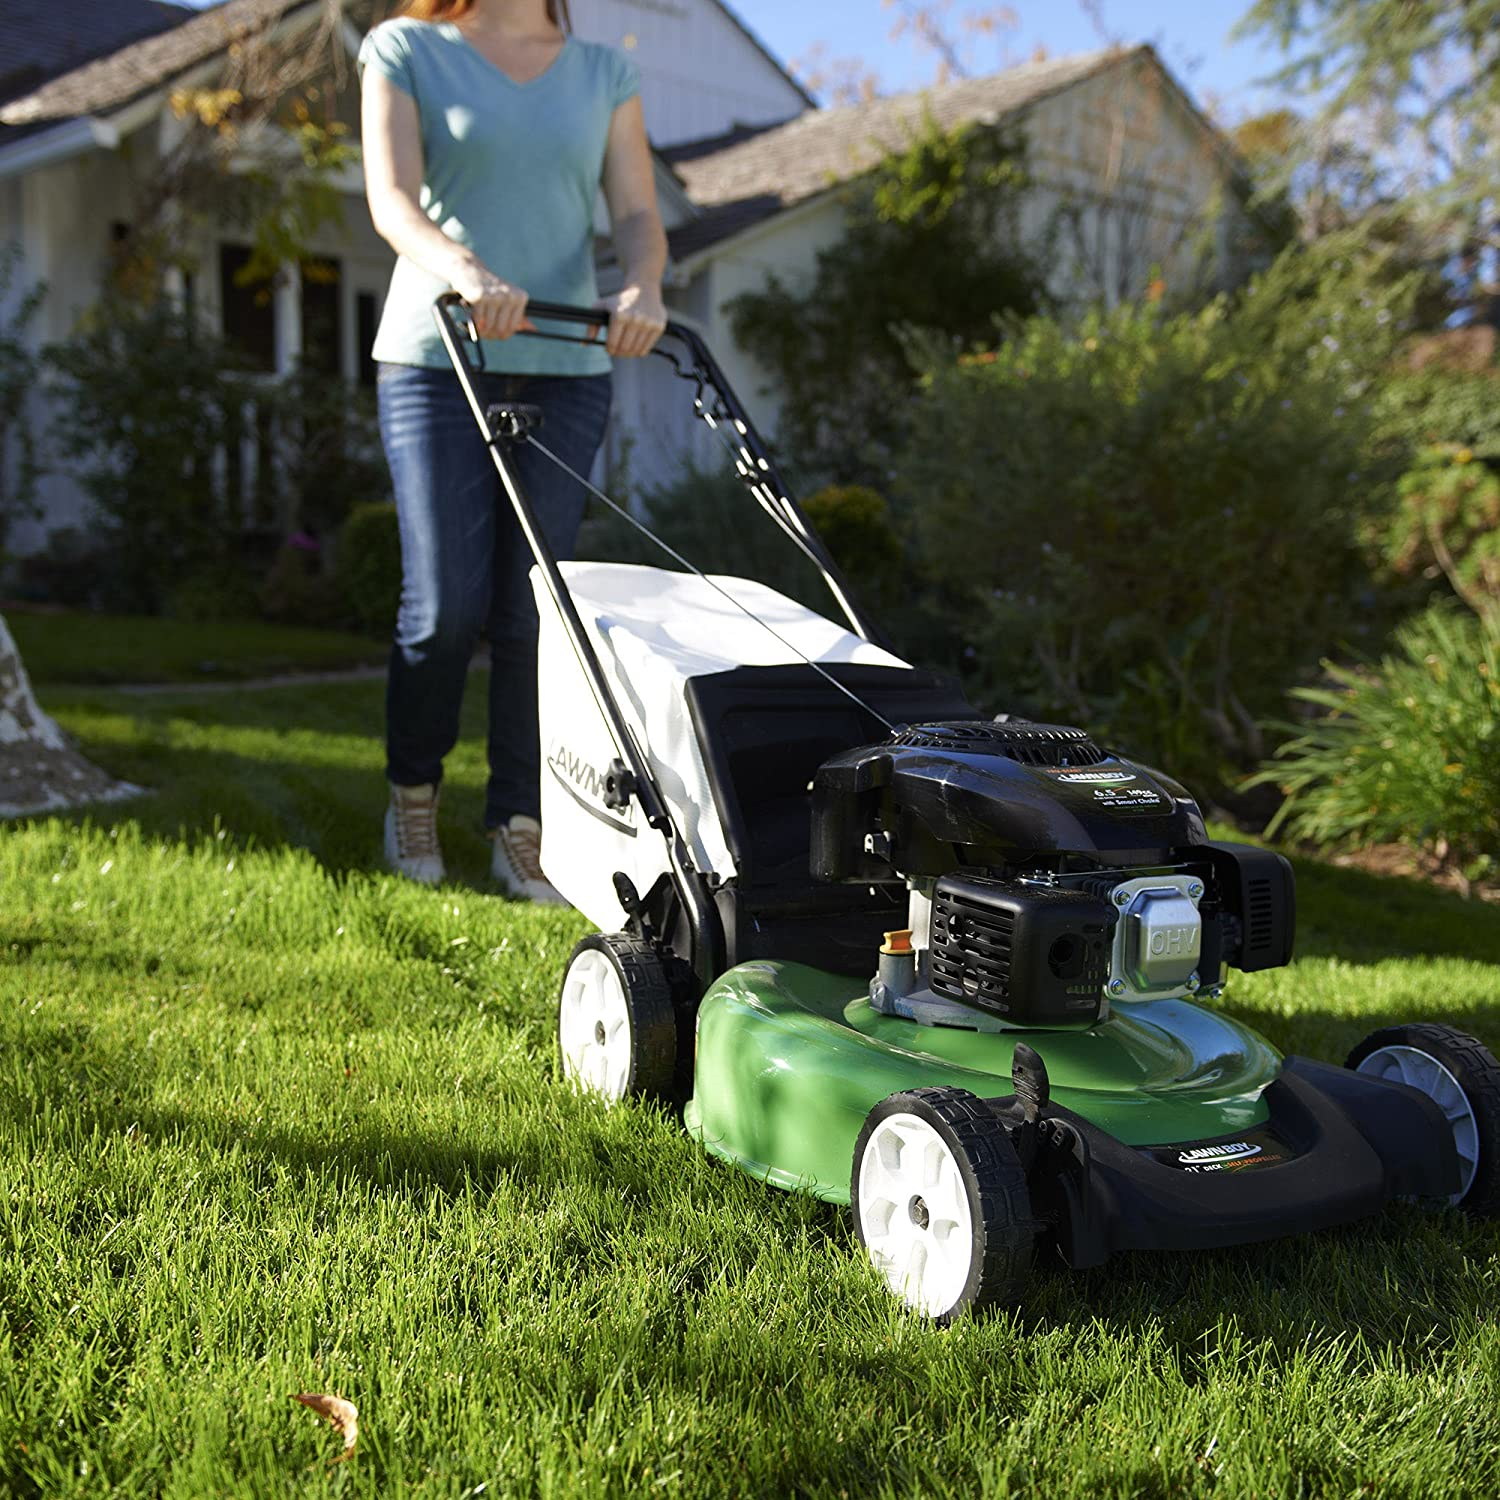 Amazon.com : Lawn-Boy 10732 Kohler XT6 OHV, Rear Wheel Drive Self Propelled  Gas Lawn Mower, 21-Inch : Garden & Outdoor